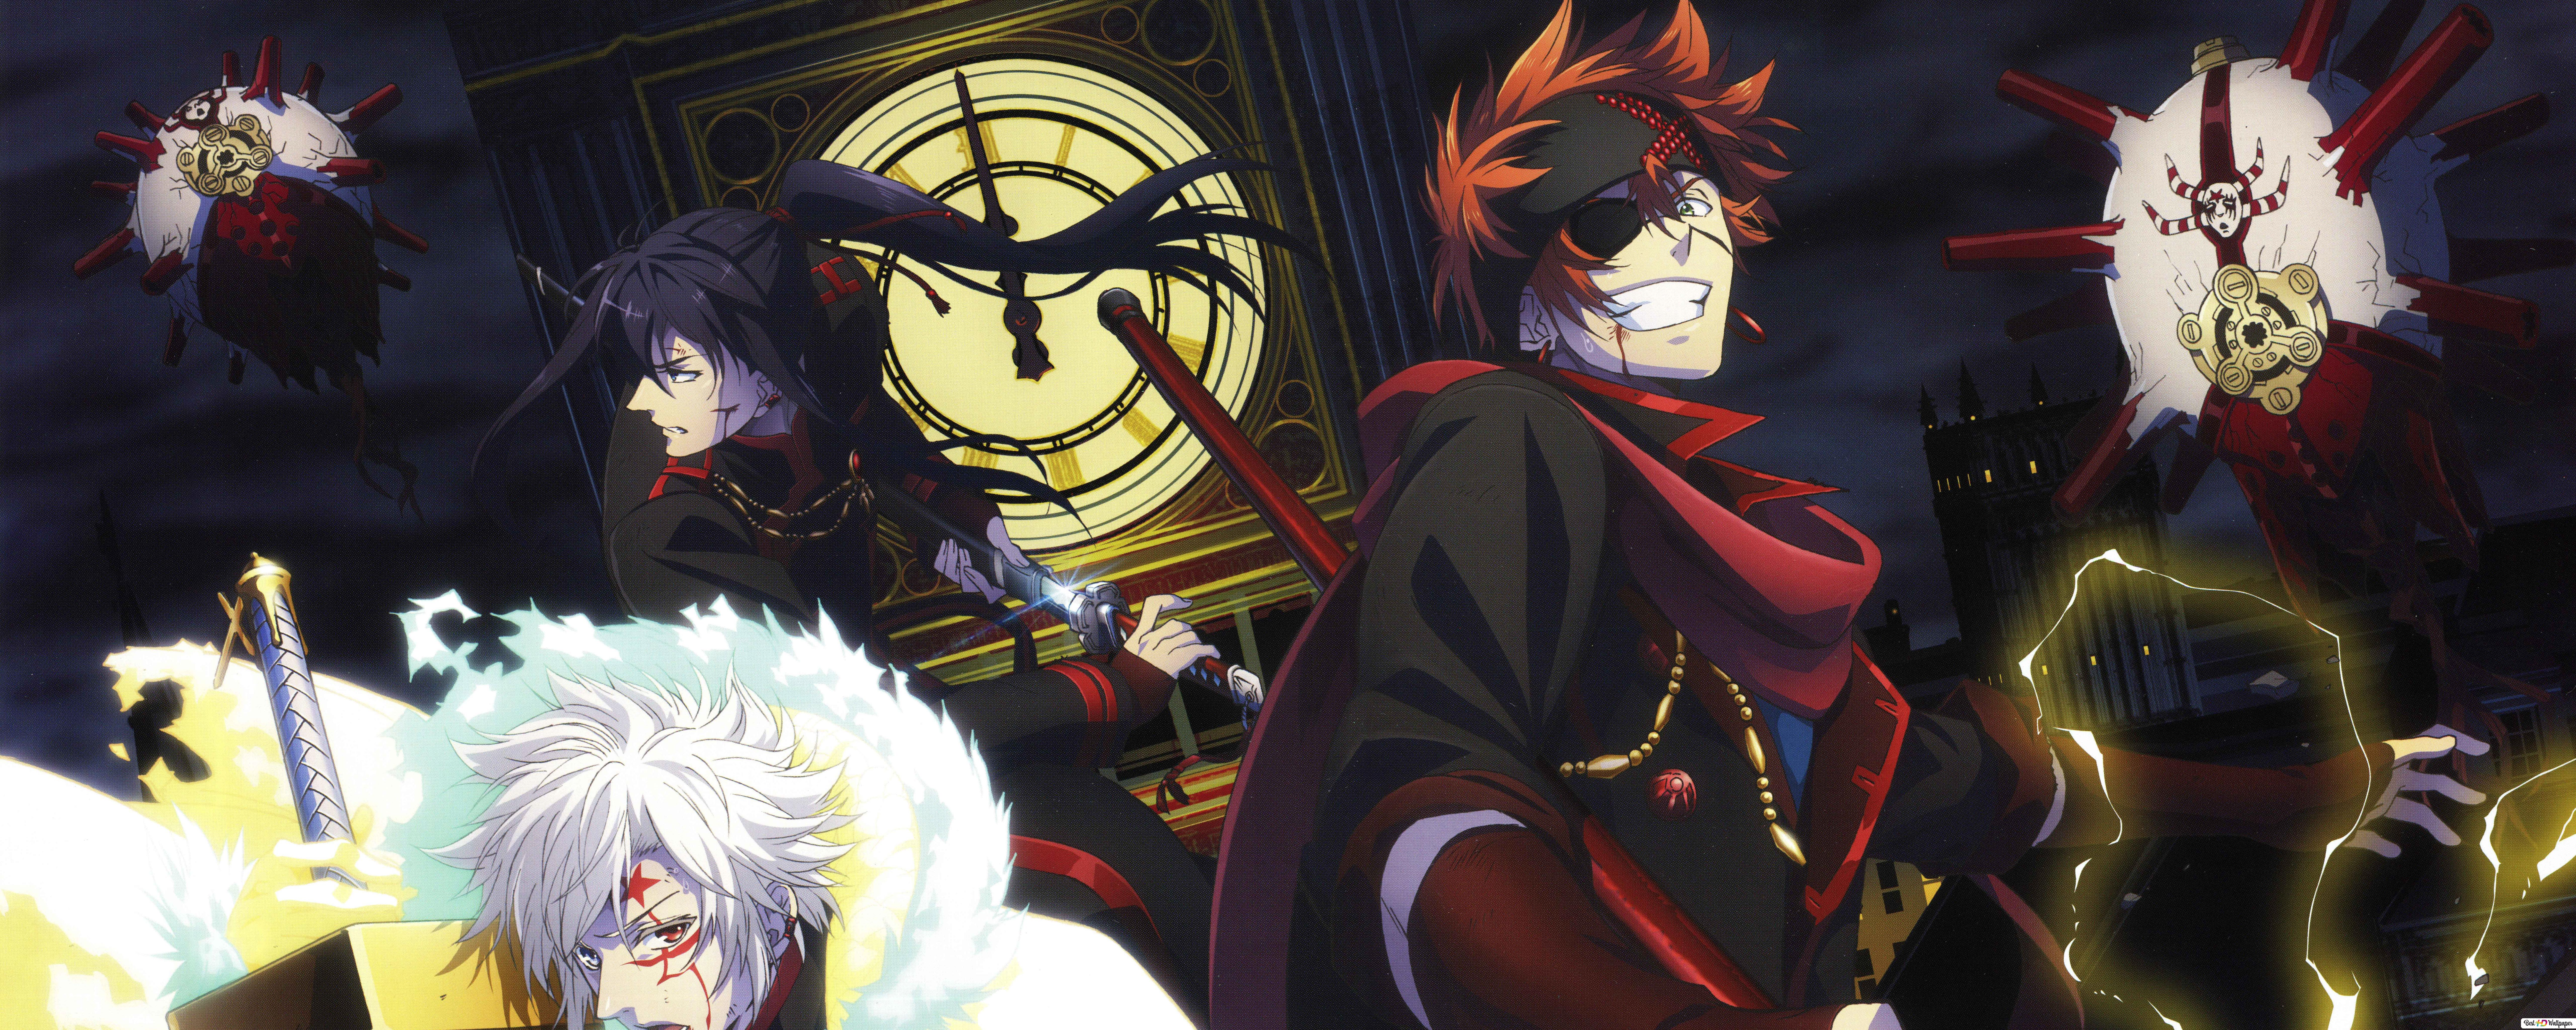 D Gray Man Anime Hd Wallpaper Download